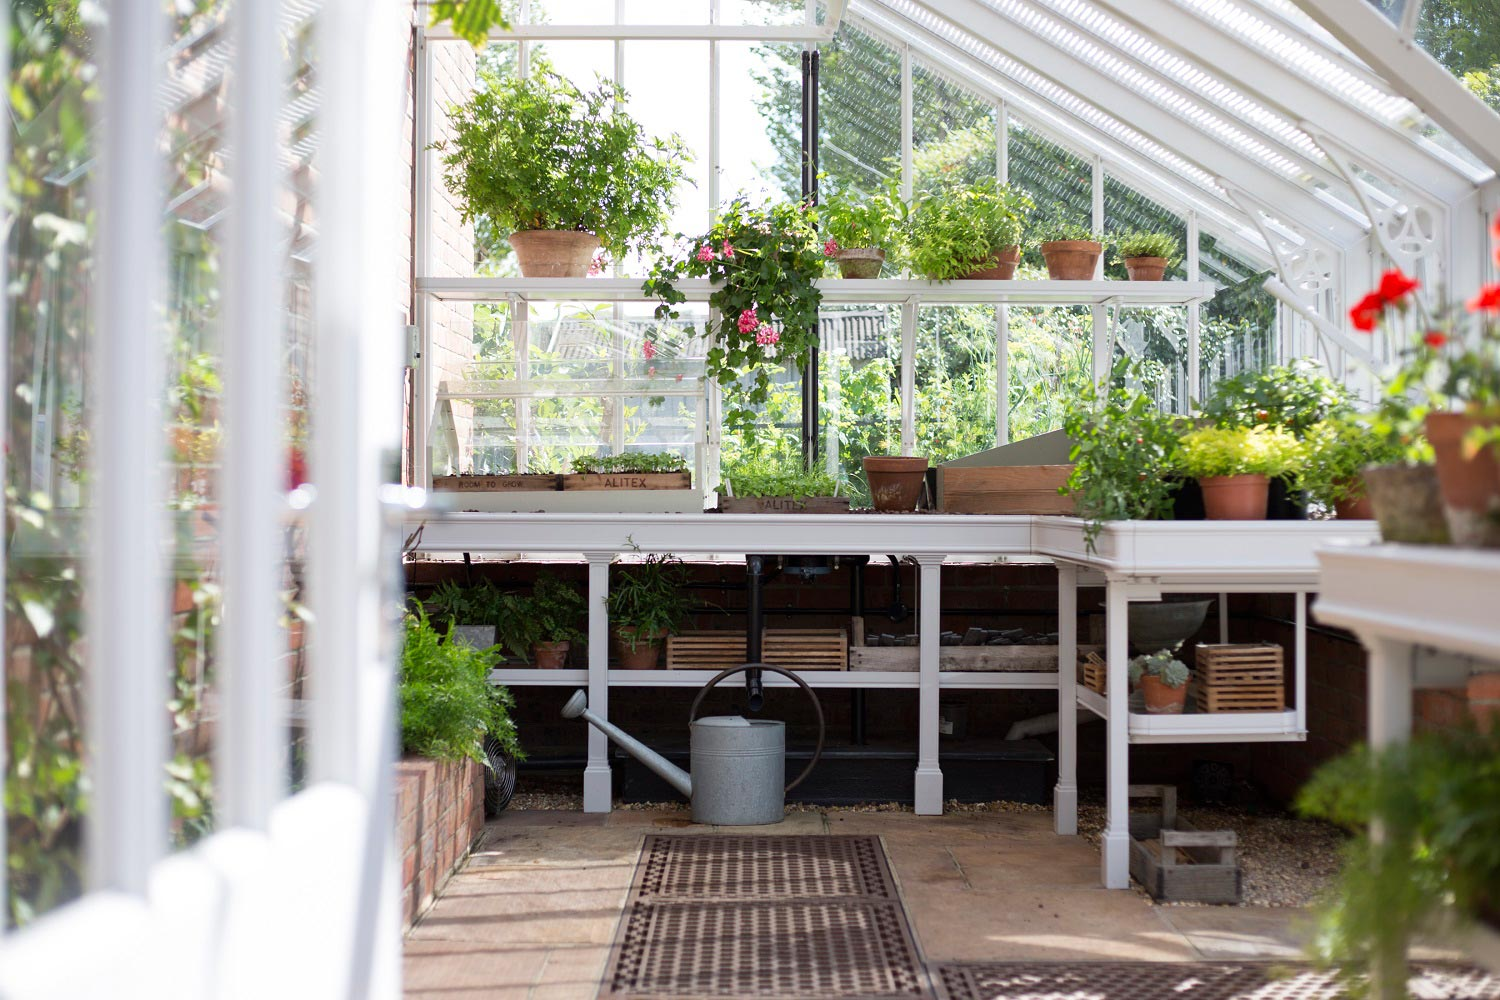 Benching inside lean-to greenhouse (Alitex greenhouse accessories)